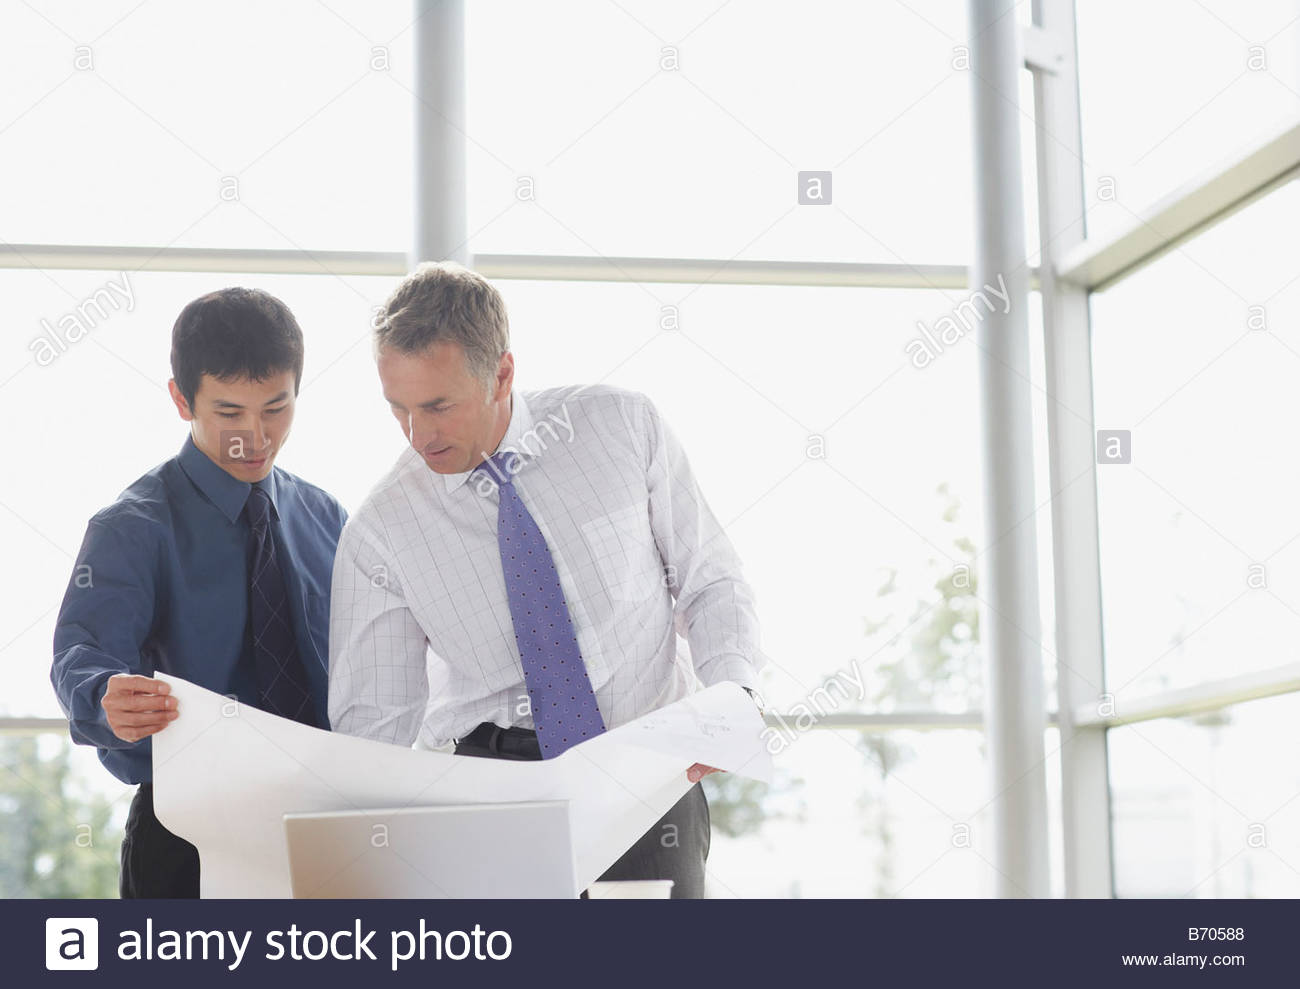 Businessmen looking at blueprints - Stock Image